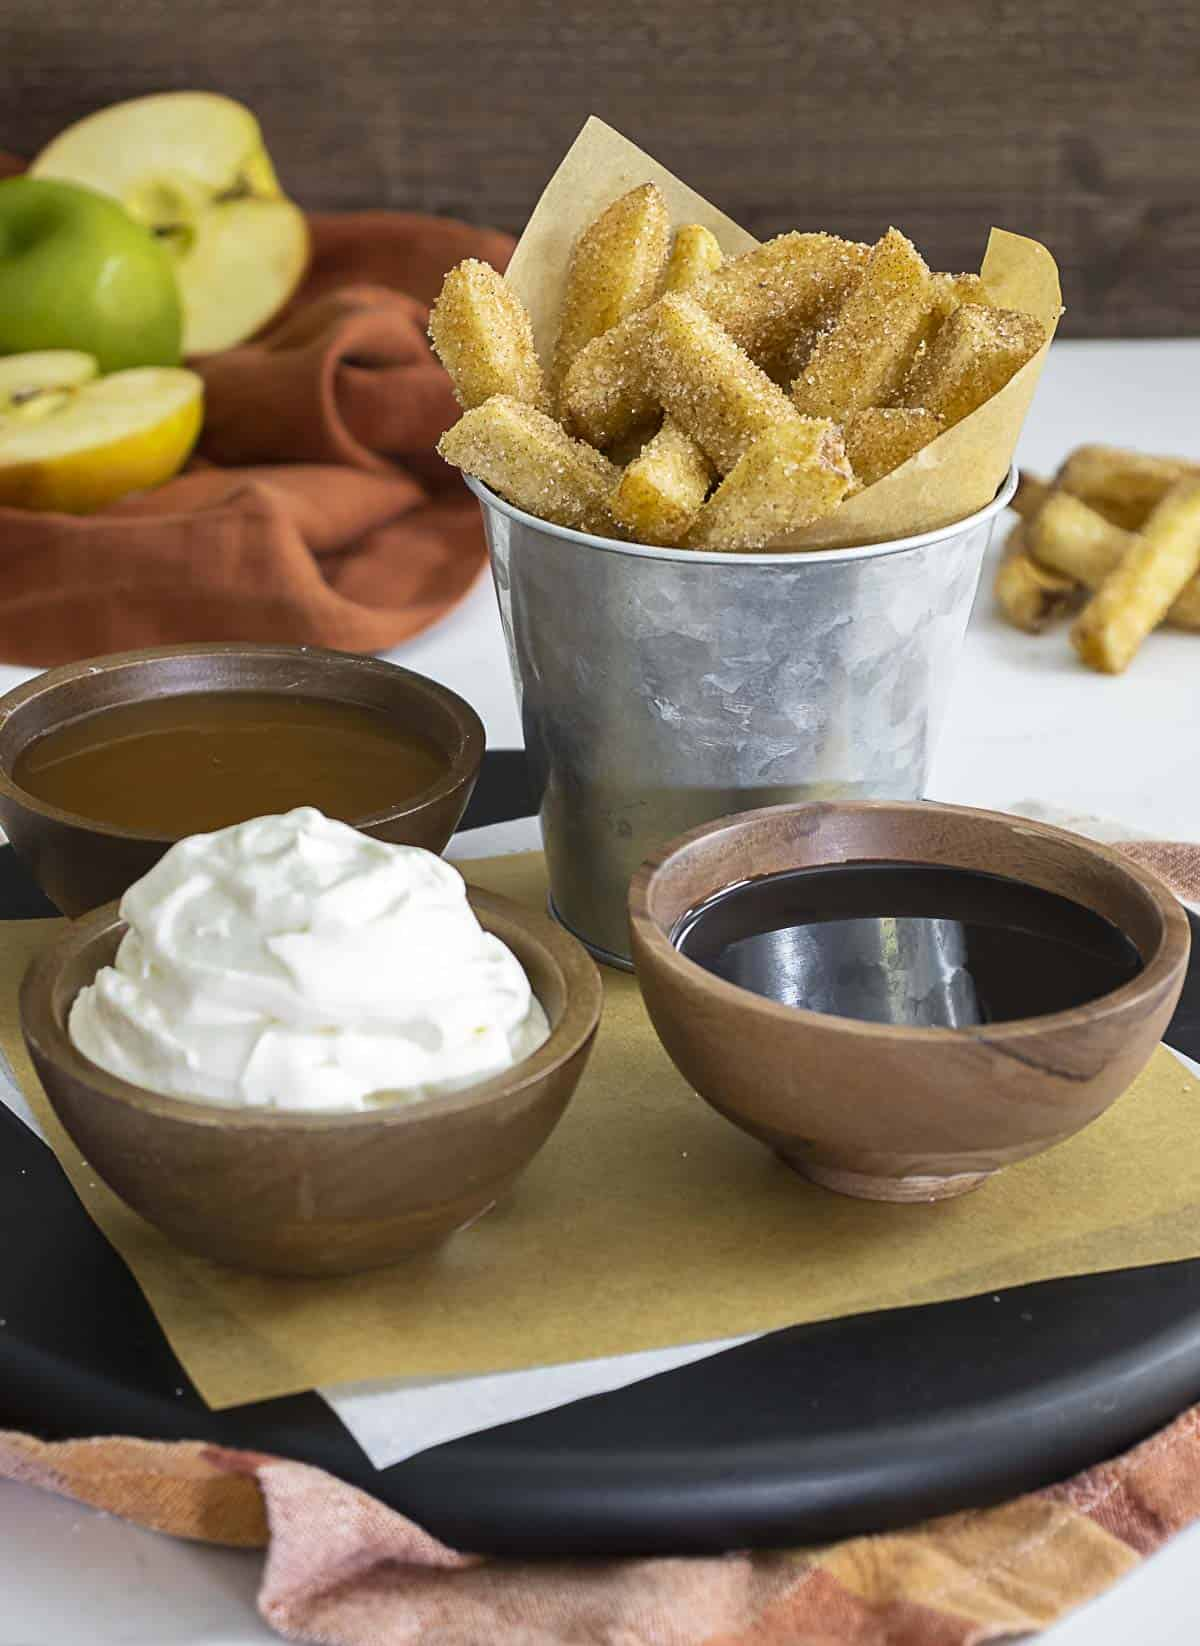 Apple fries in a cup on a cutting board with chocolate sauce, caramel sauce and whipped cream for dipping.